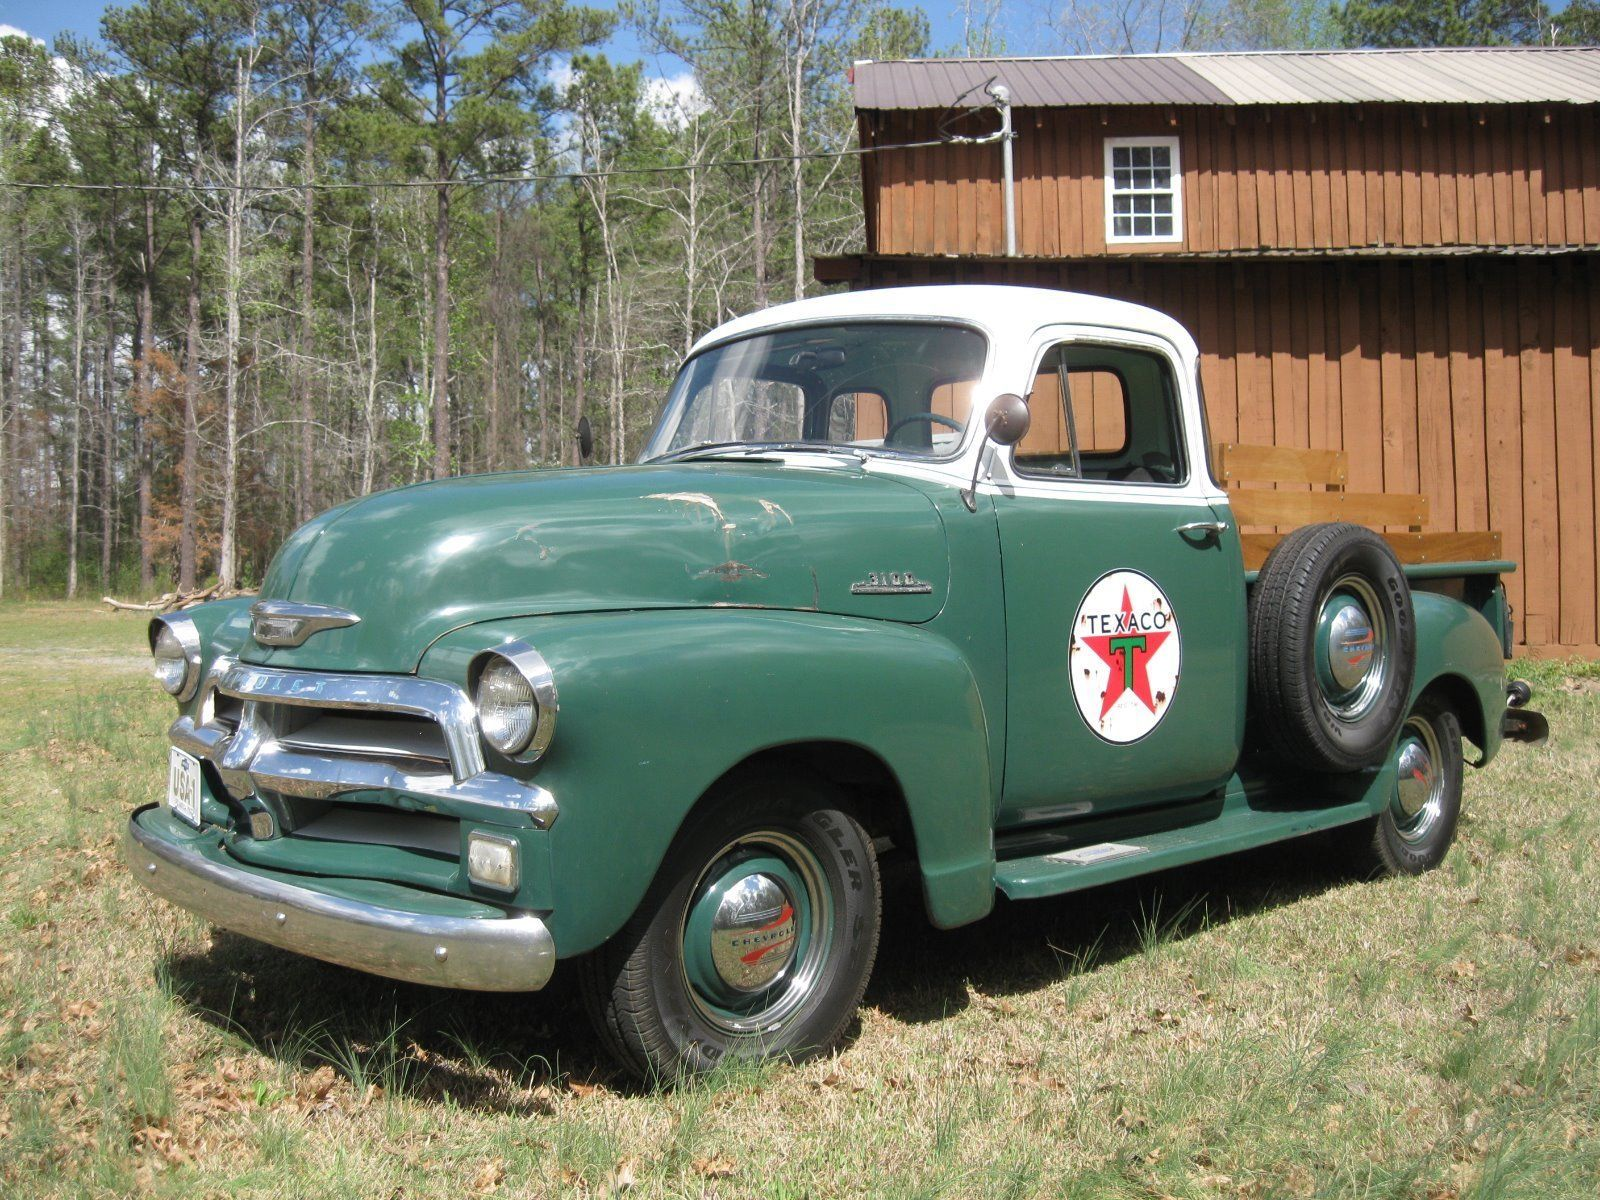 Rust Free 1954 Chevrolet Pickup with low miles | Vintage trucks for ...